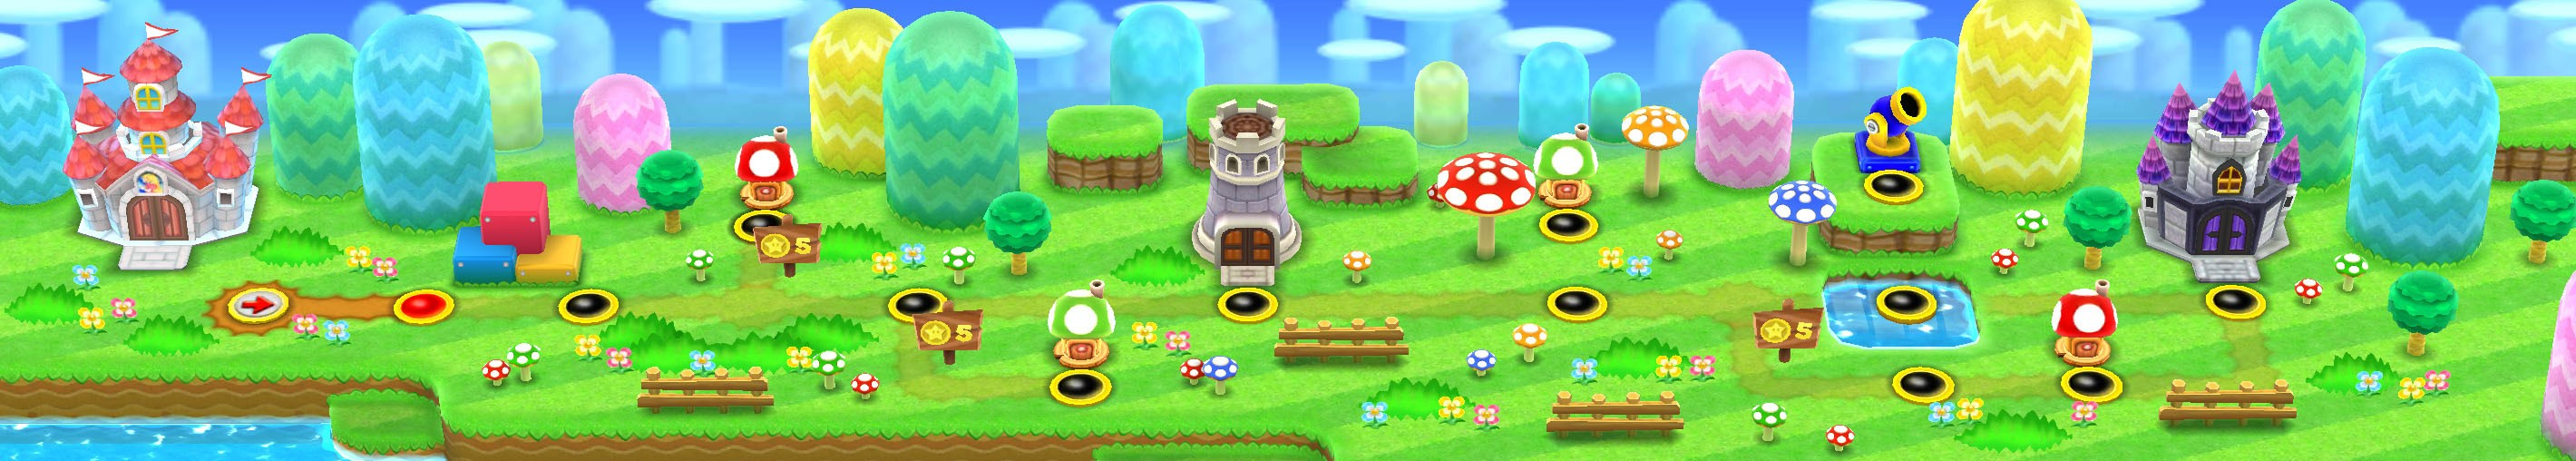 comment avoir le monde fleur new super mario bros 2